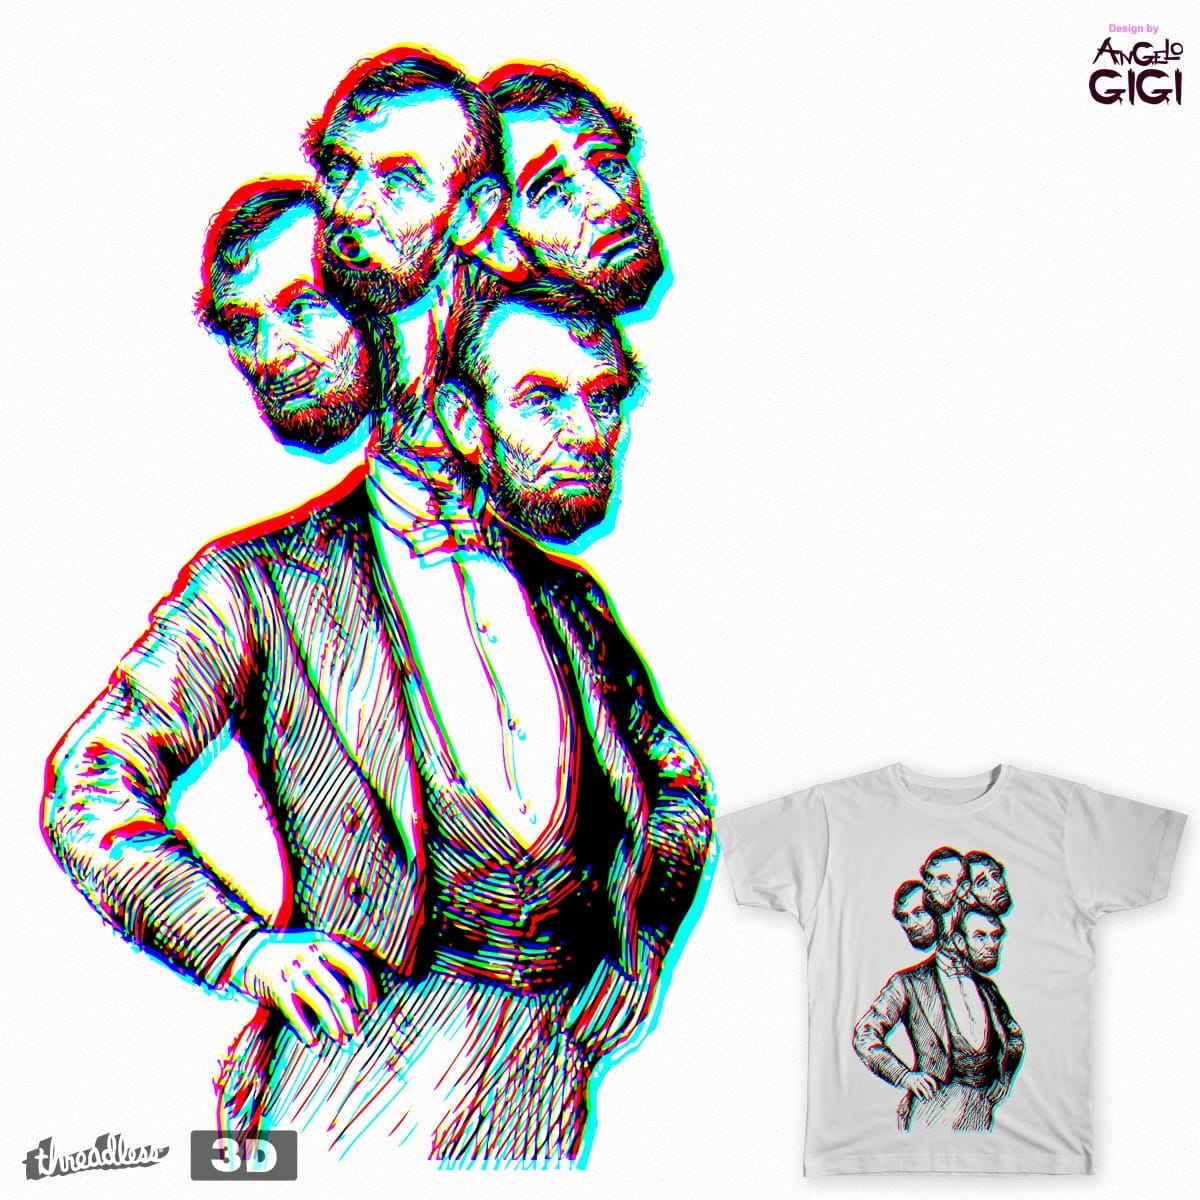 ABE by Angelo-Gomez on Threadless